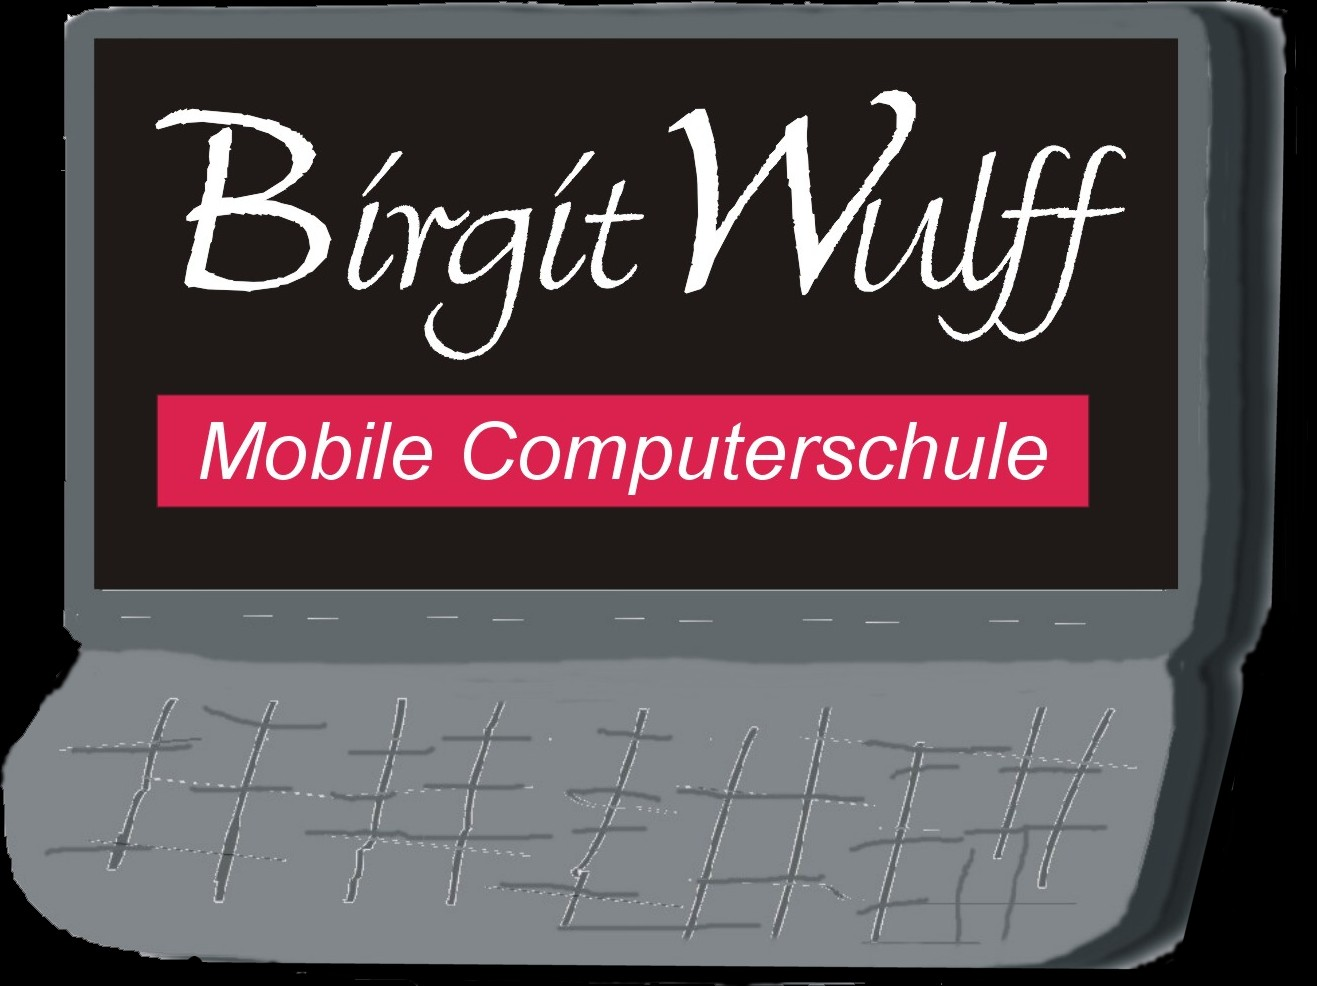 BW Mobile Computerschule